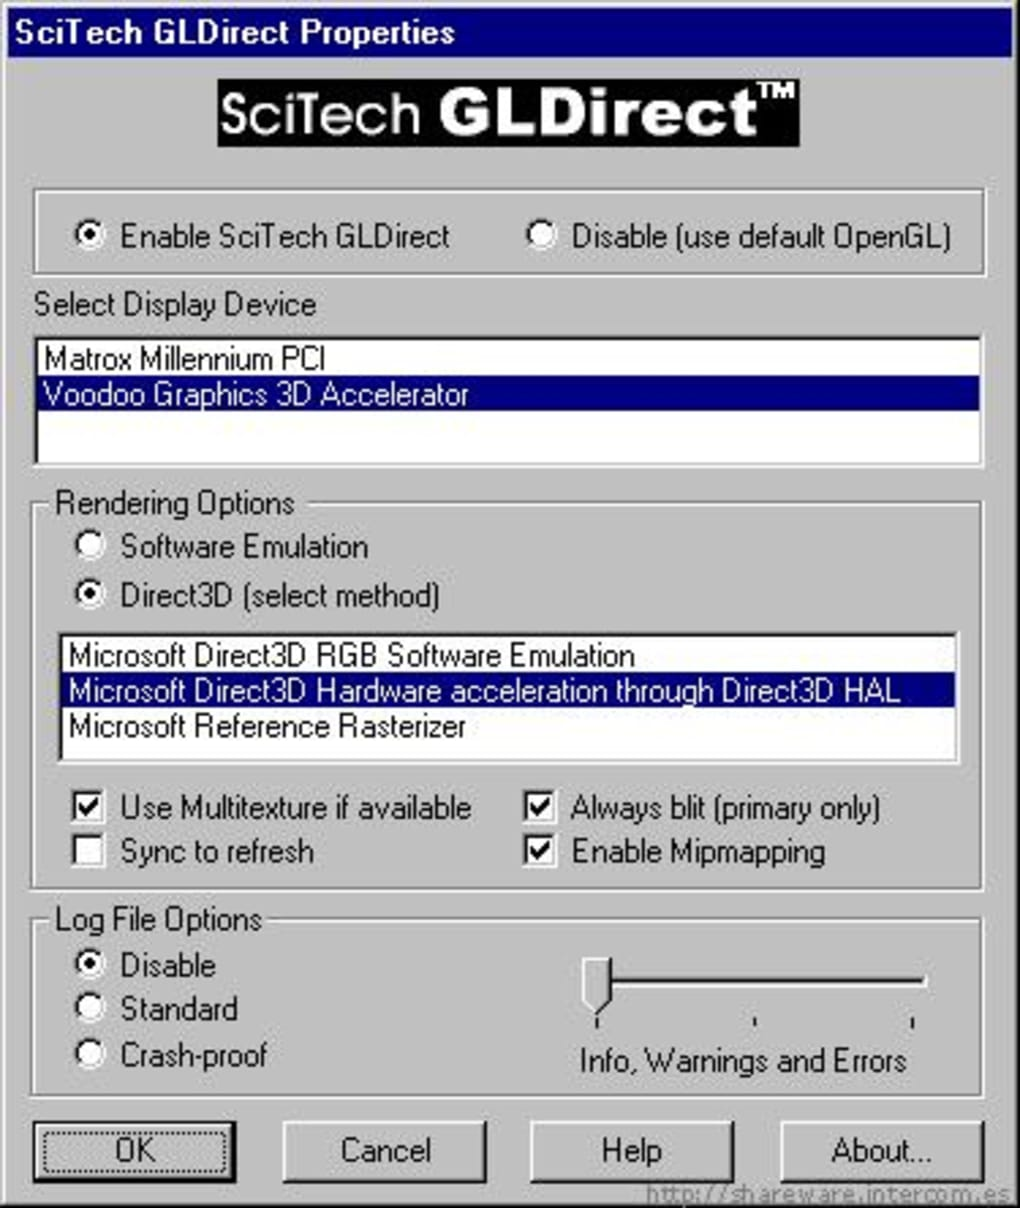 scitech gldirect v4.0.1